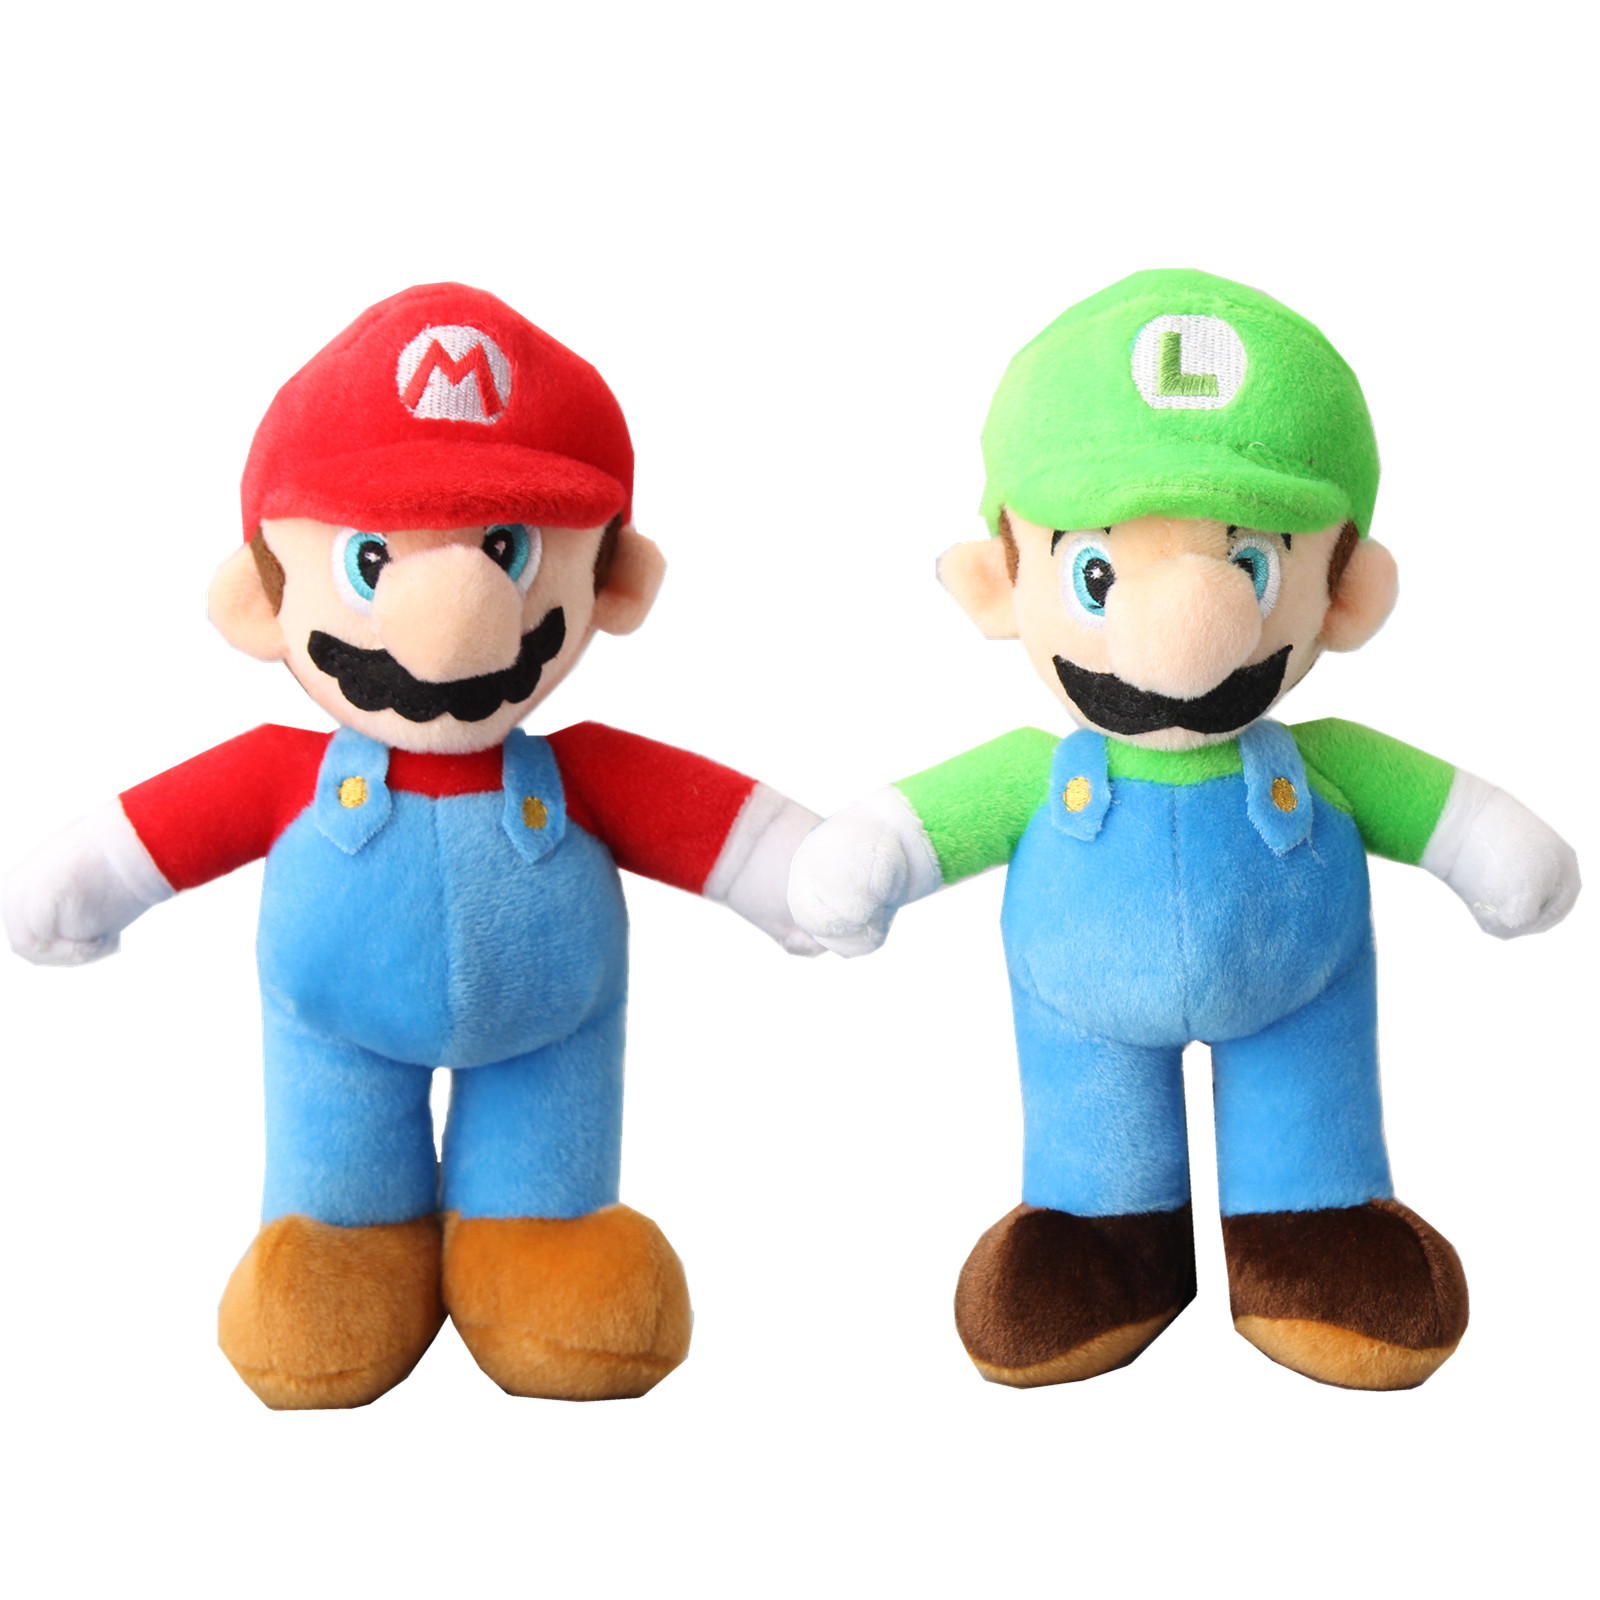 25cm Mario Series Plush Dolls Toys Classic Game Characters Mario